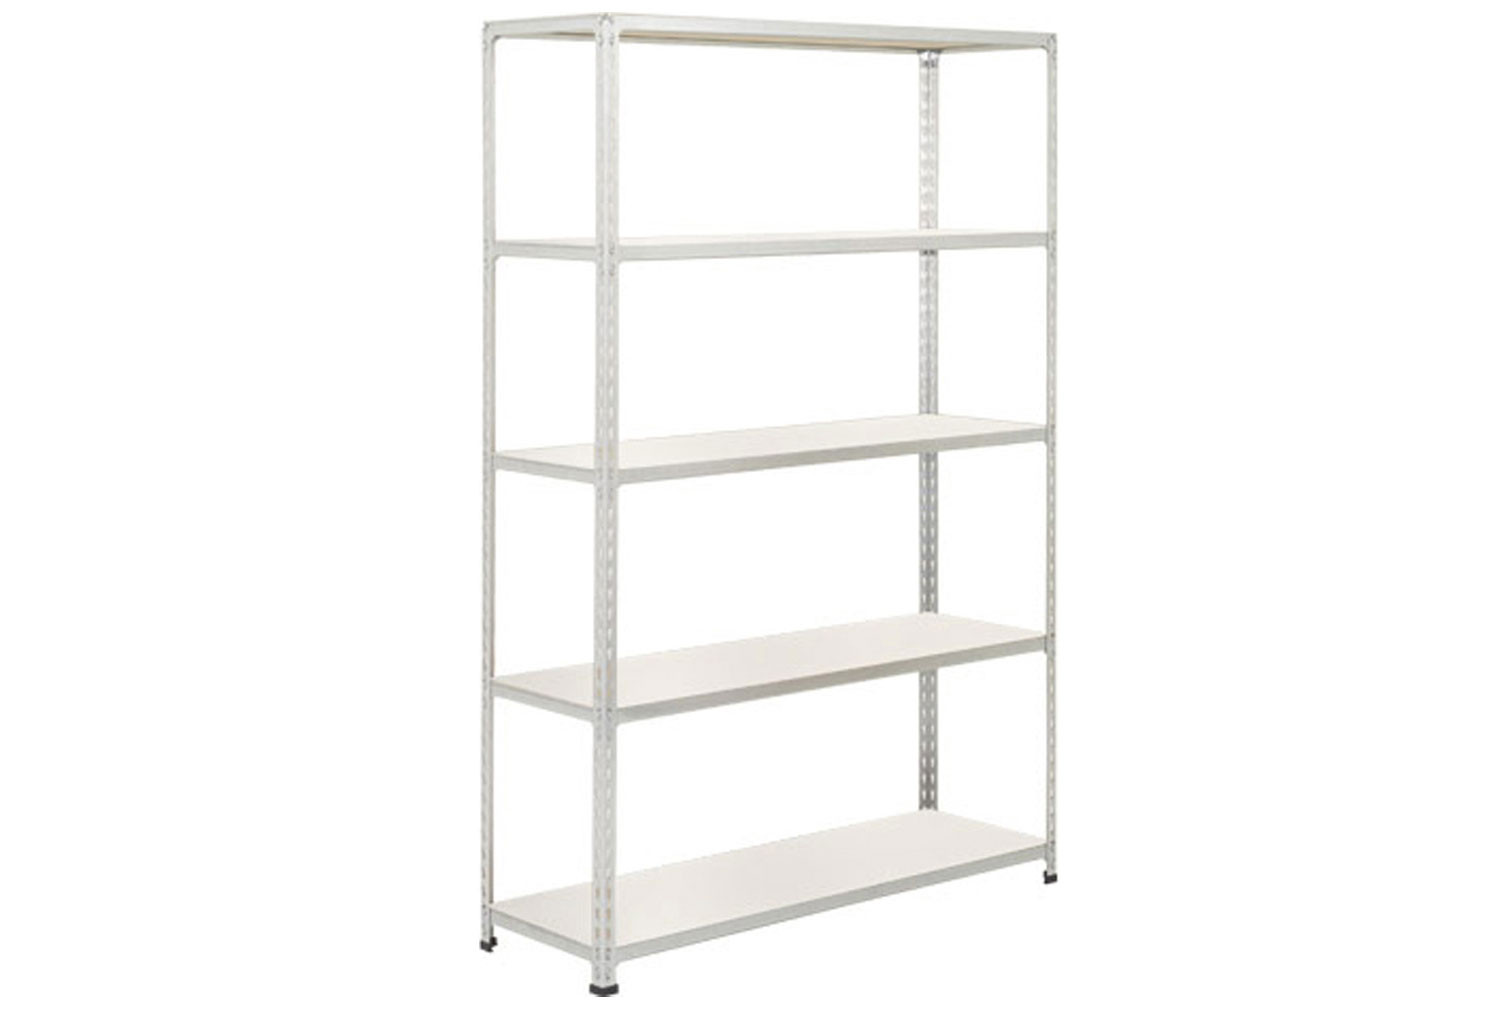 Rapid 2 Shelving With 5 Melamine Shelves 1525wx1600h (Grey)